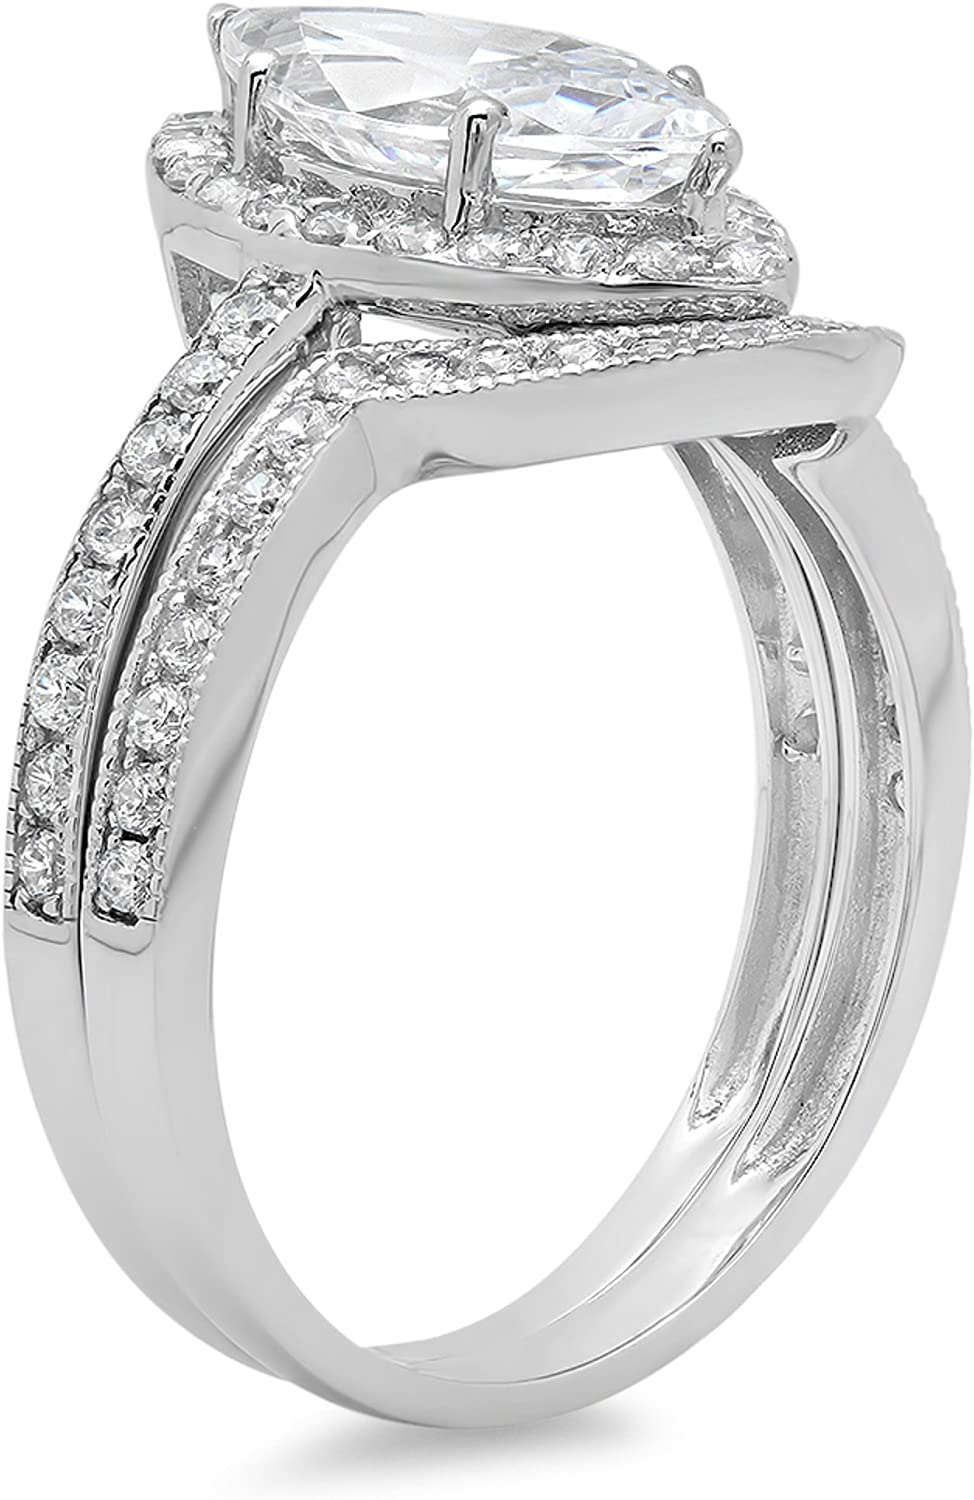 2.1ct Marquise Round Cut Pave Halo Solitaire with Accent VVS1 Ideal D White Created Sapphire & Simulated Diamond Engagement Promise Designer Anniversary Wedding Bridal ring band set 14k White Gold